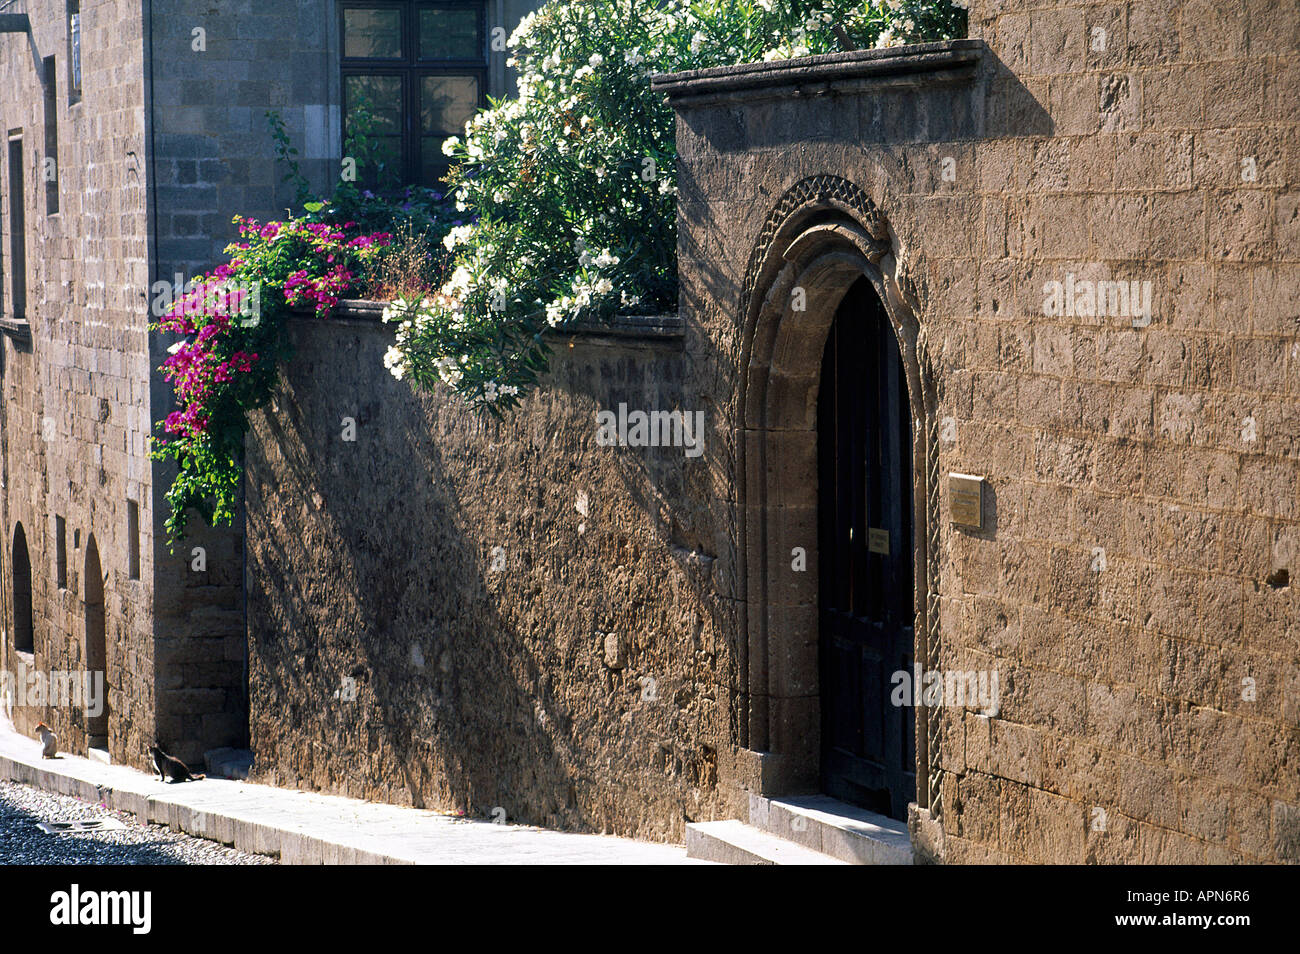 Flowers spilling over the walls framing the arched doorway to the ...